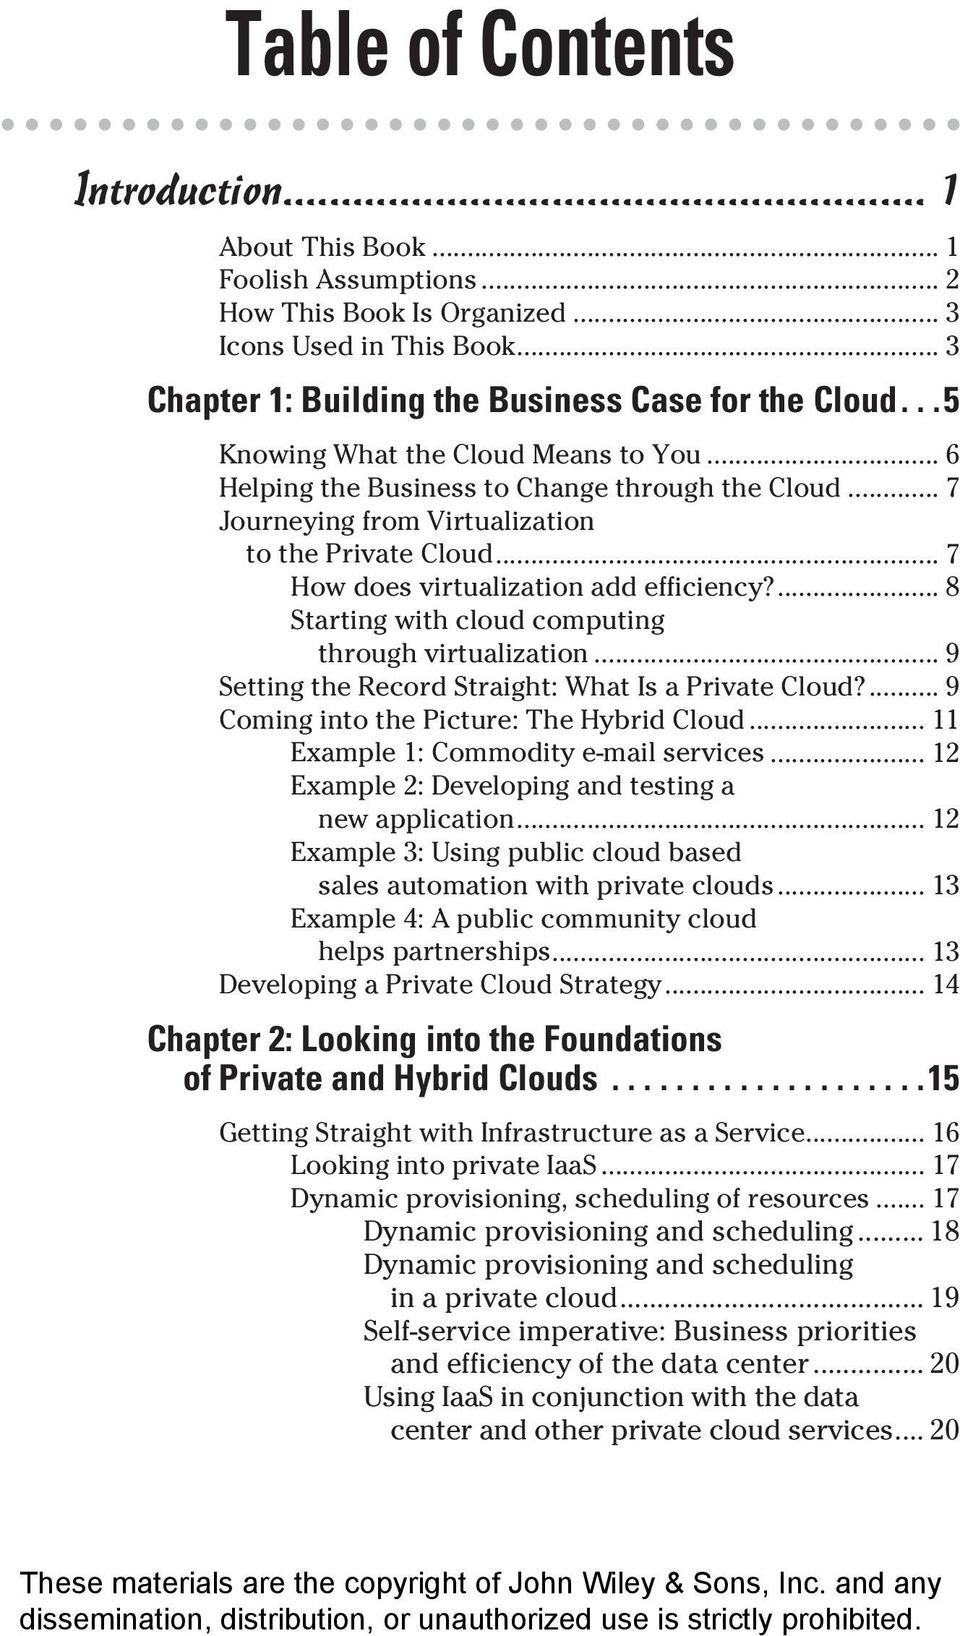 ... 8 Starting with cloud computing through virtualization... 9 Setting the Record Straight: What Is a Private Cloud?... 9 Coming into the Picture: The Hybrid Cloud.